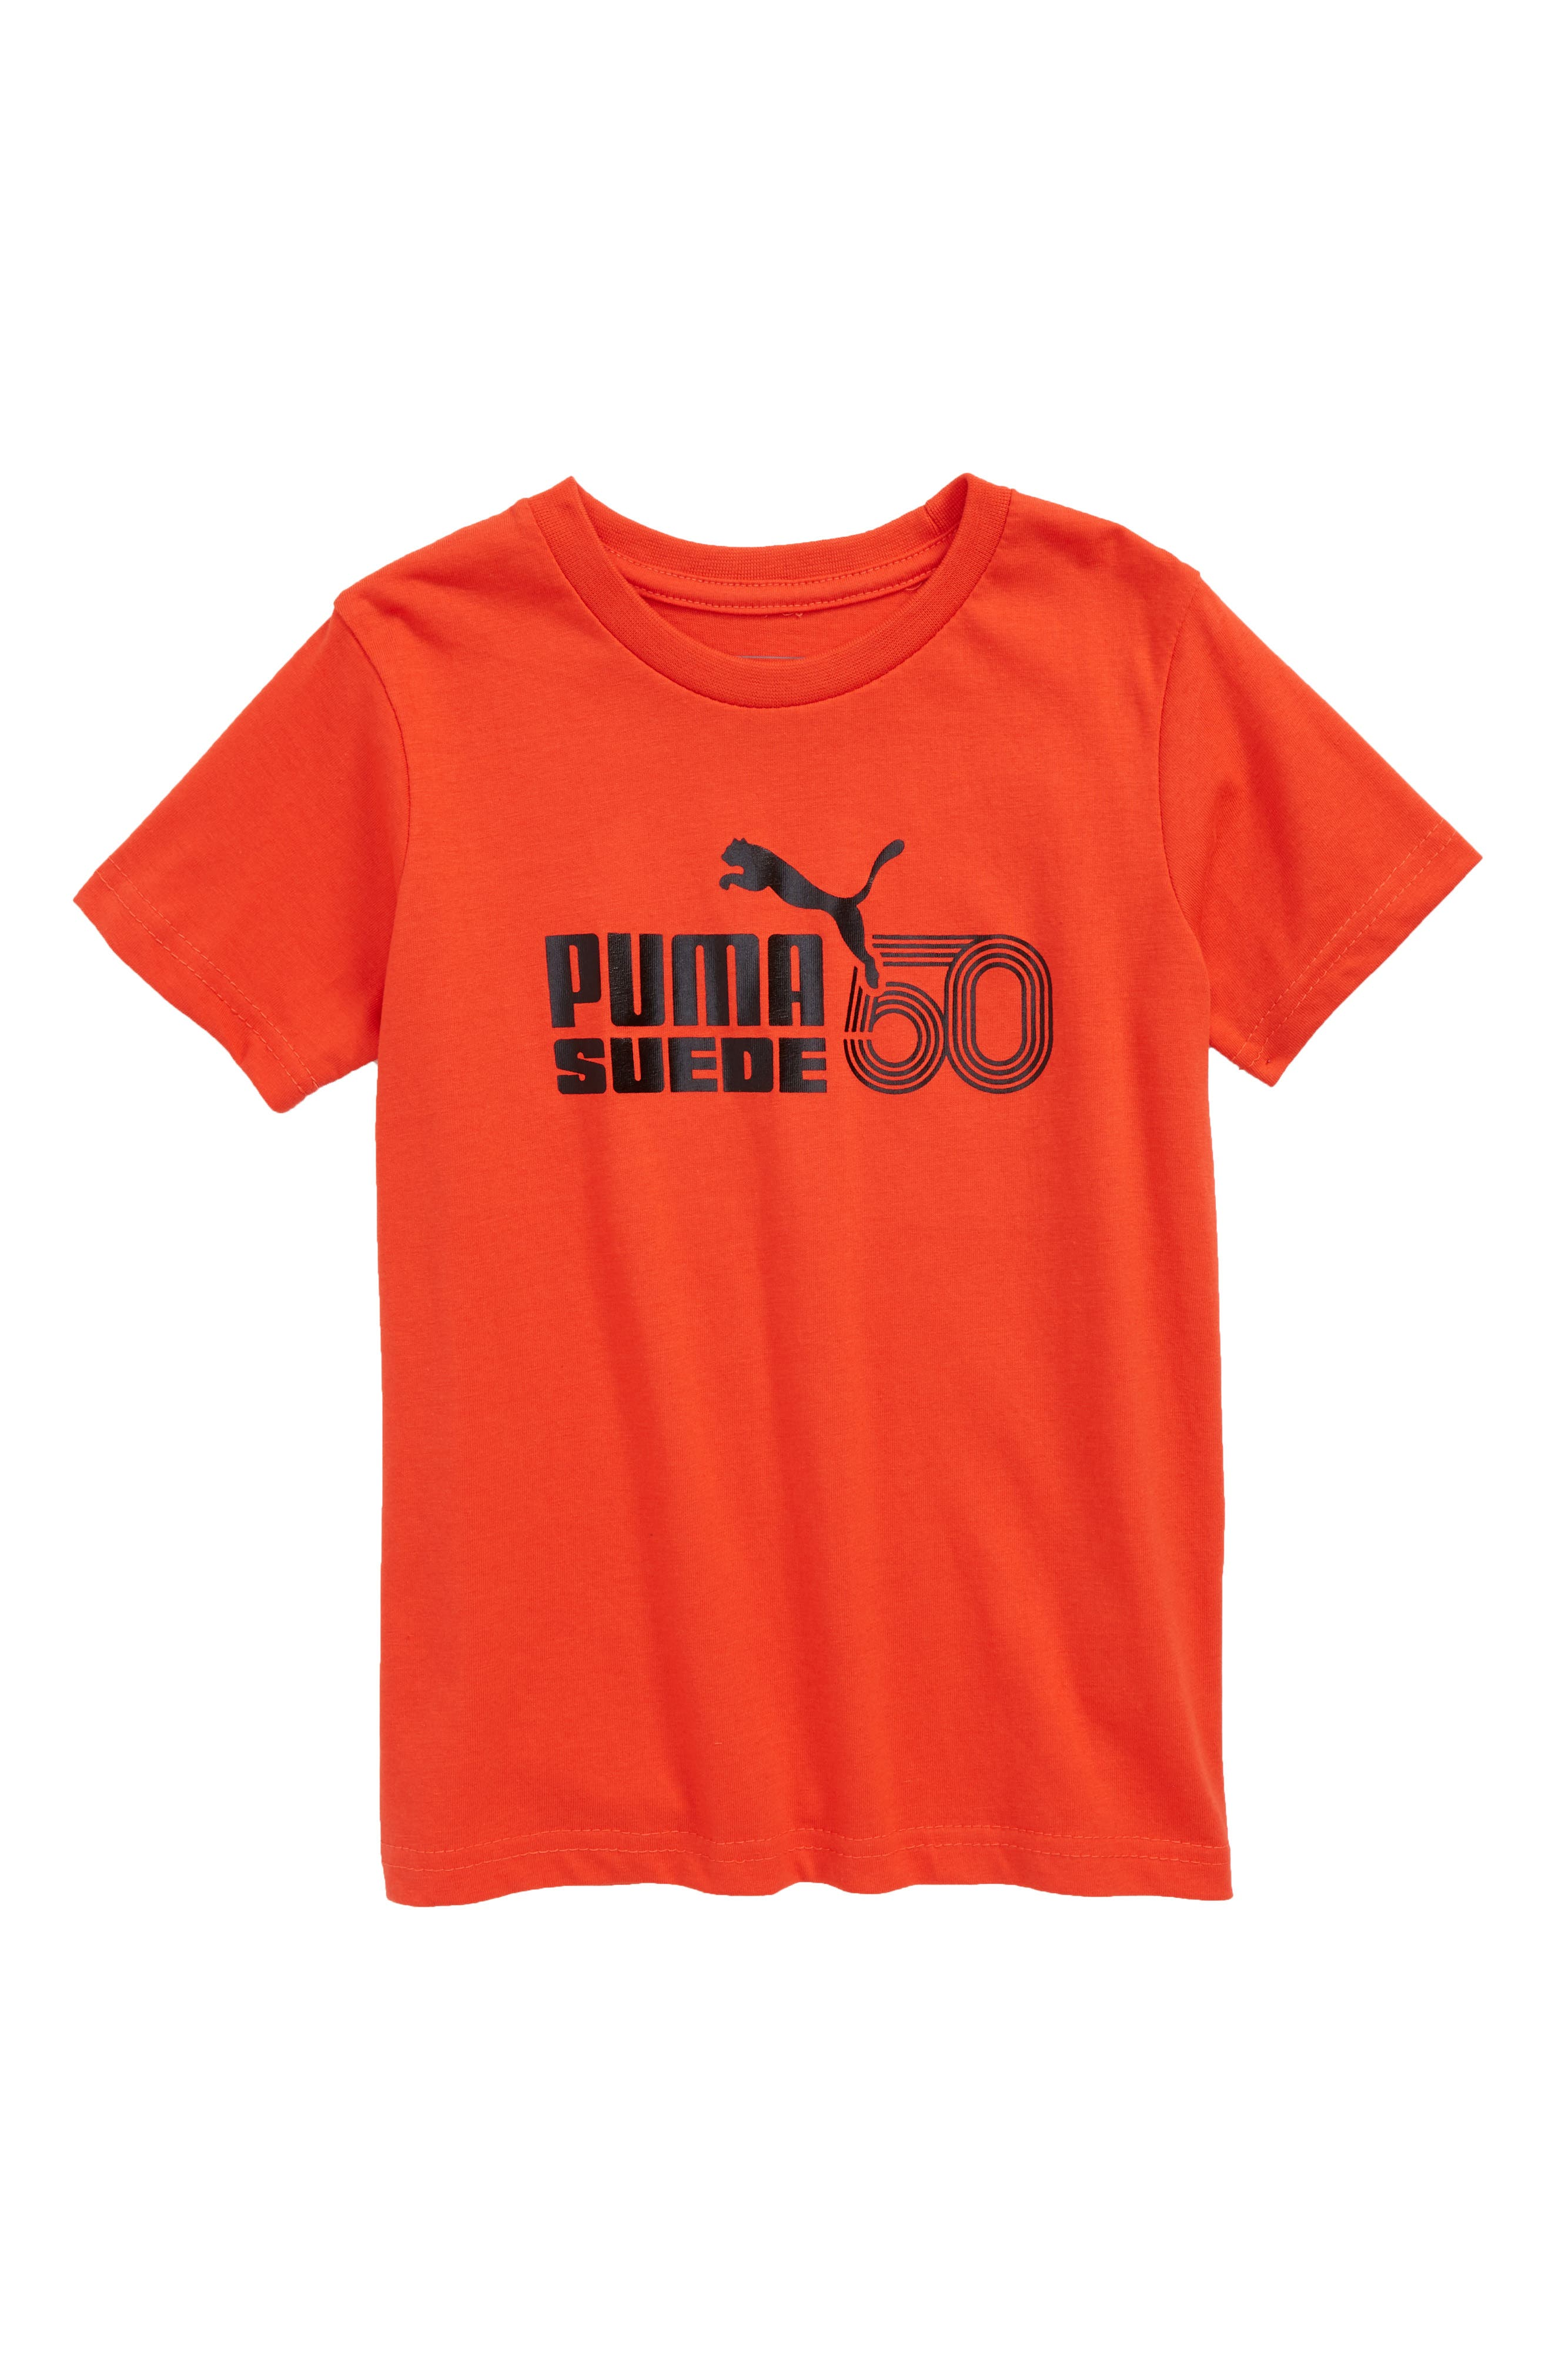 Suede 50th Anniversary Logo T-Shirt,                             Main thumbnail 1, color,                             Flame Scarlet